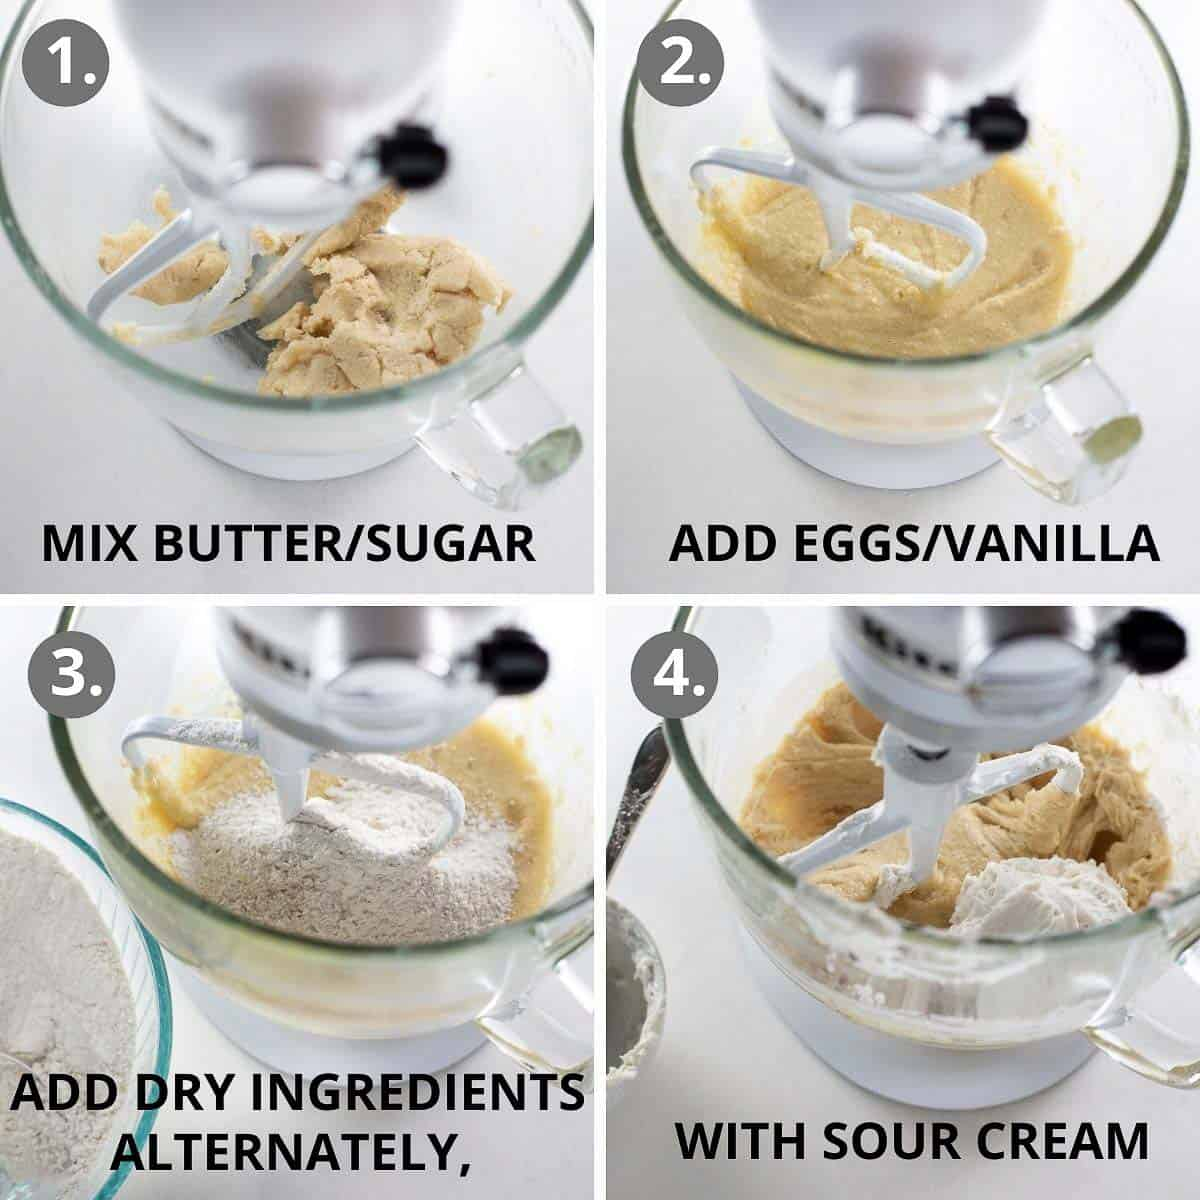 how to mix together the batter for gluten-free coffee cake